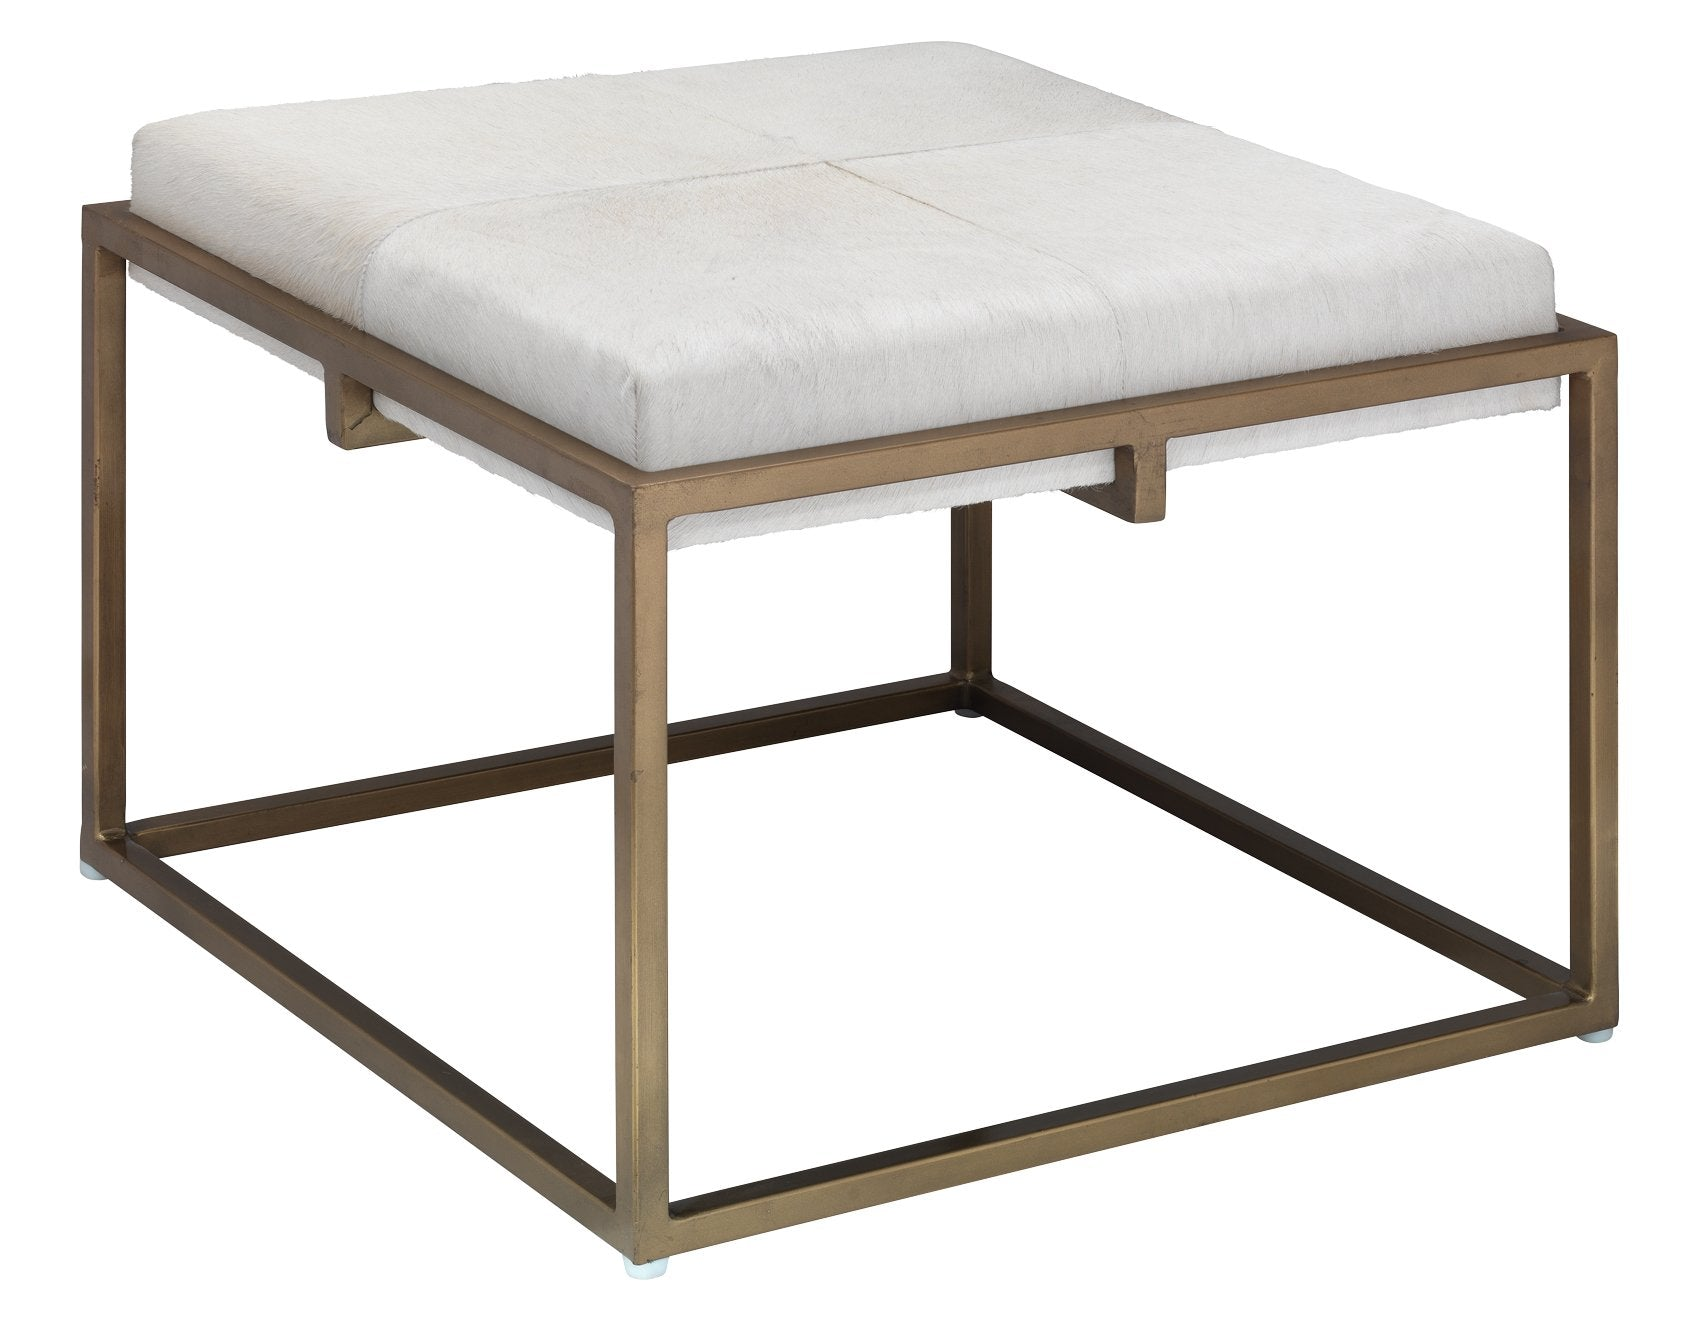 Large Shelby Stool in White Hide and Antique Brass